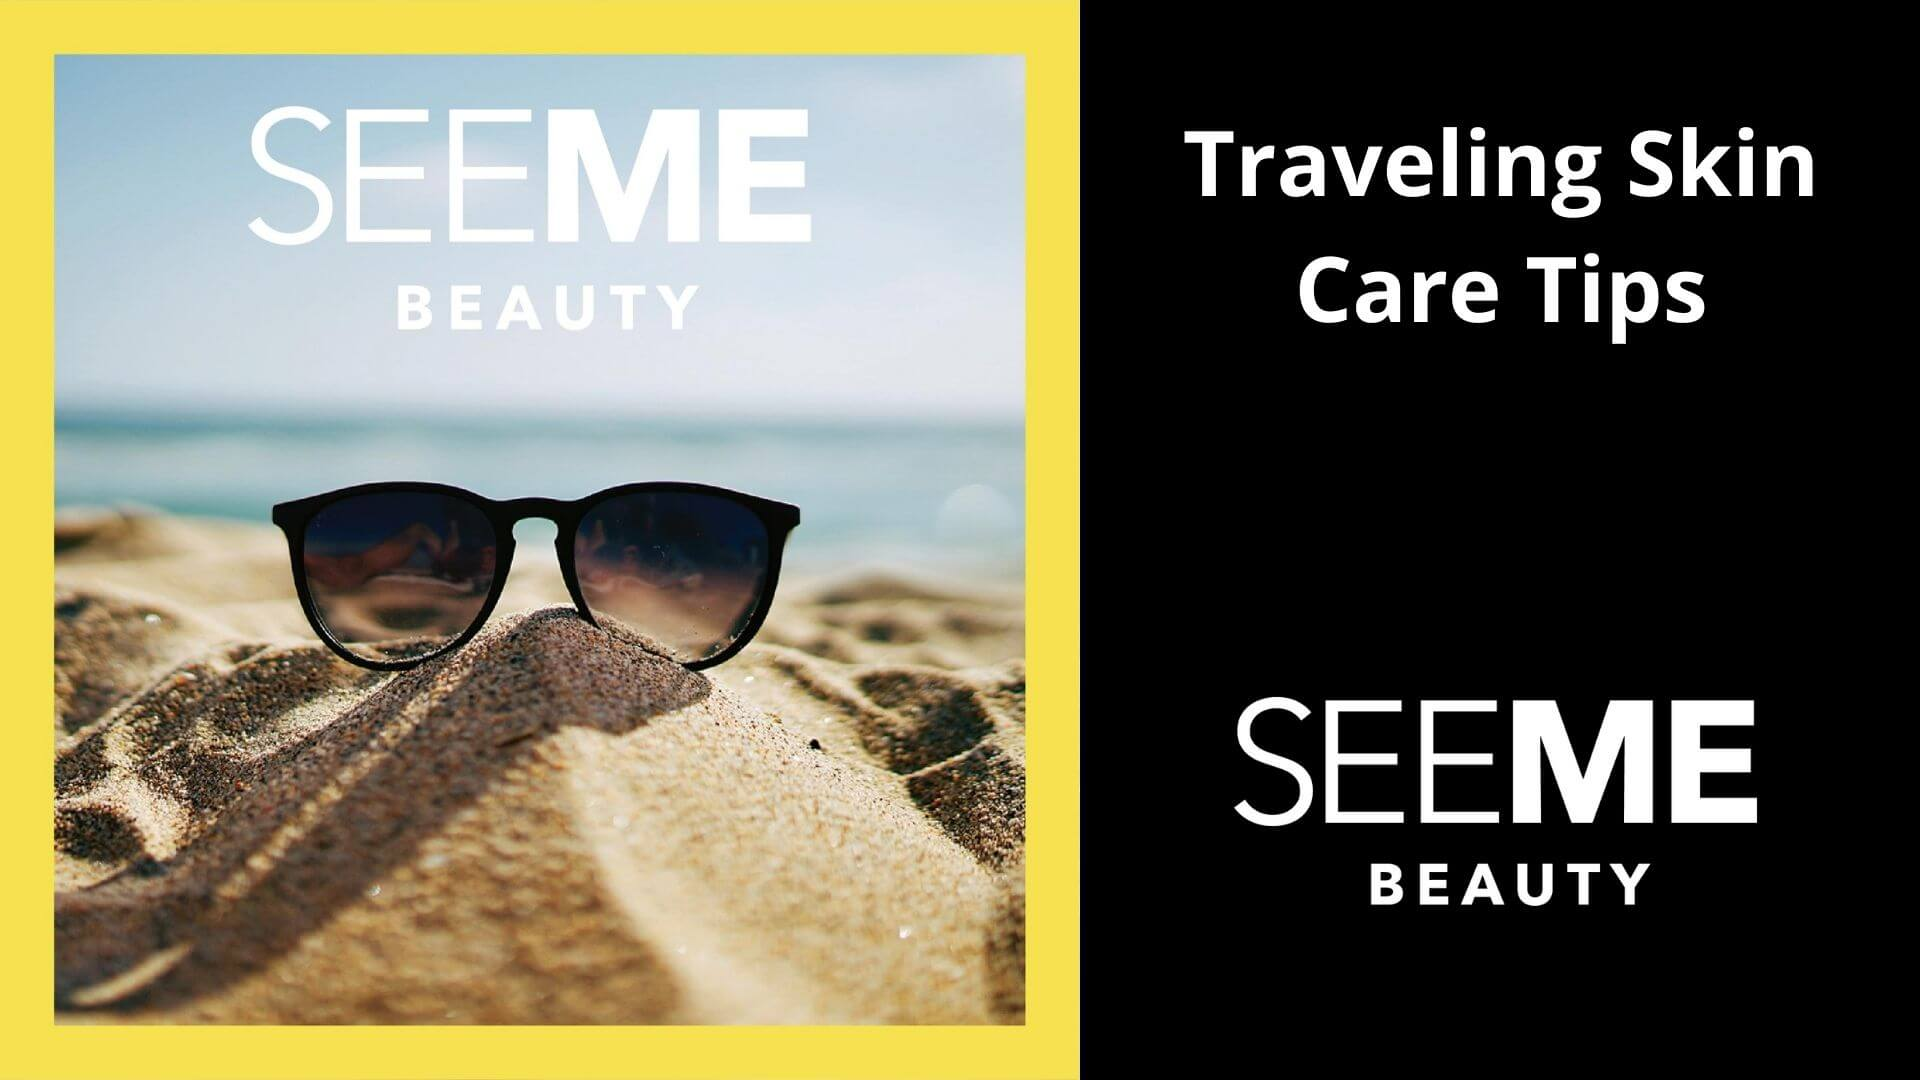 Traveling Skin Care Tips SeeMe Beauty Sunglasses on Mound of Sand